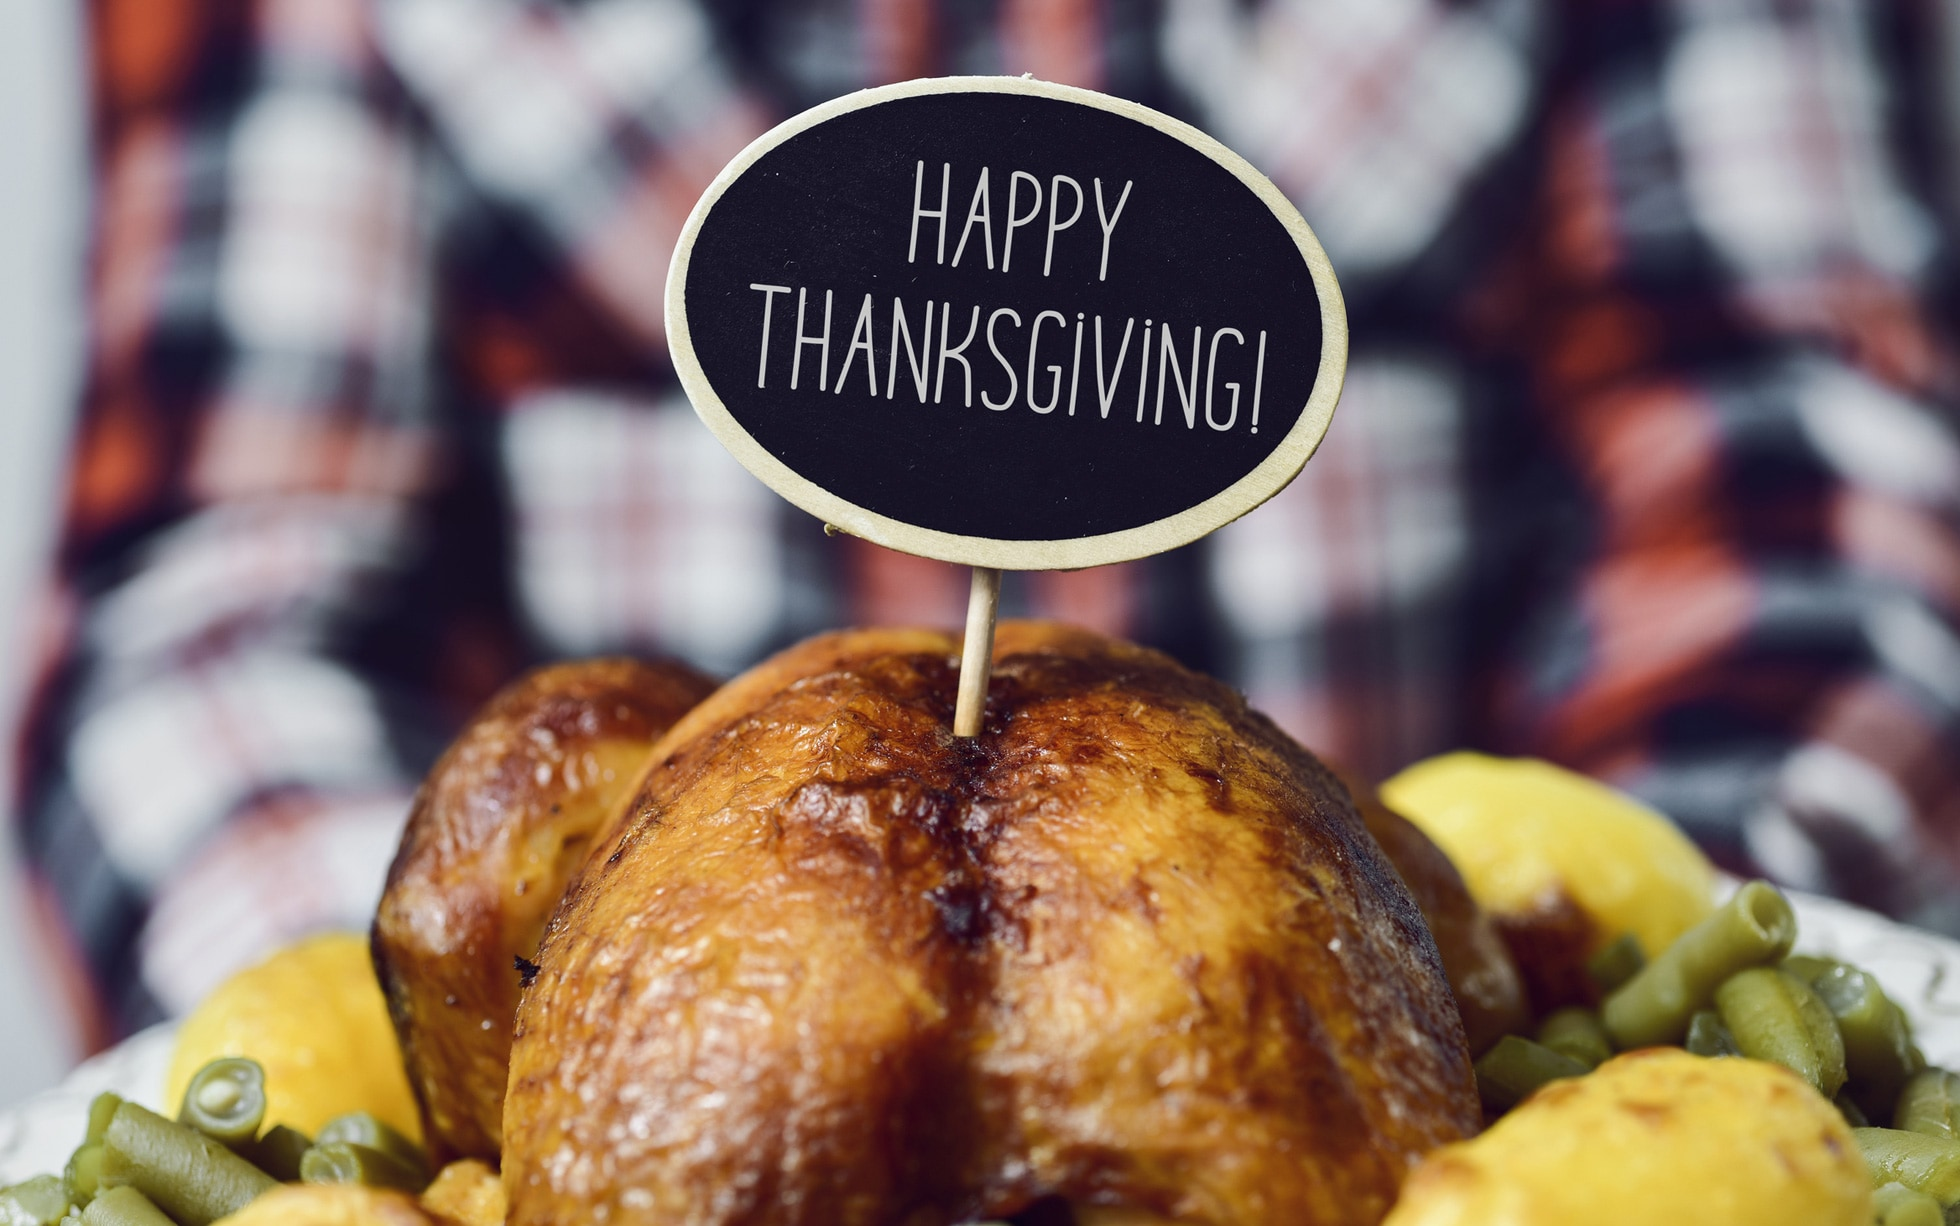 What the British will never understand about Thanksgiving